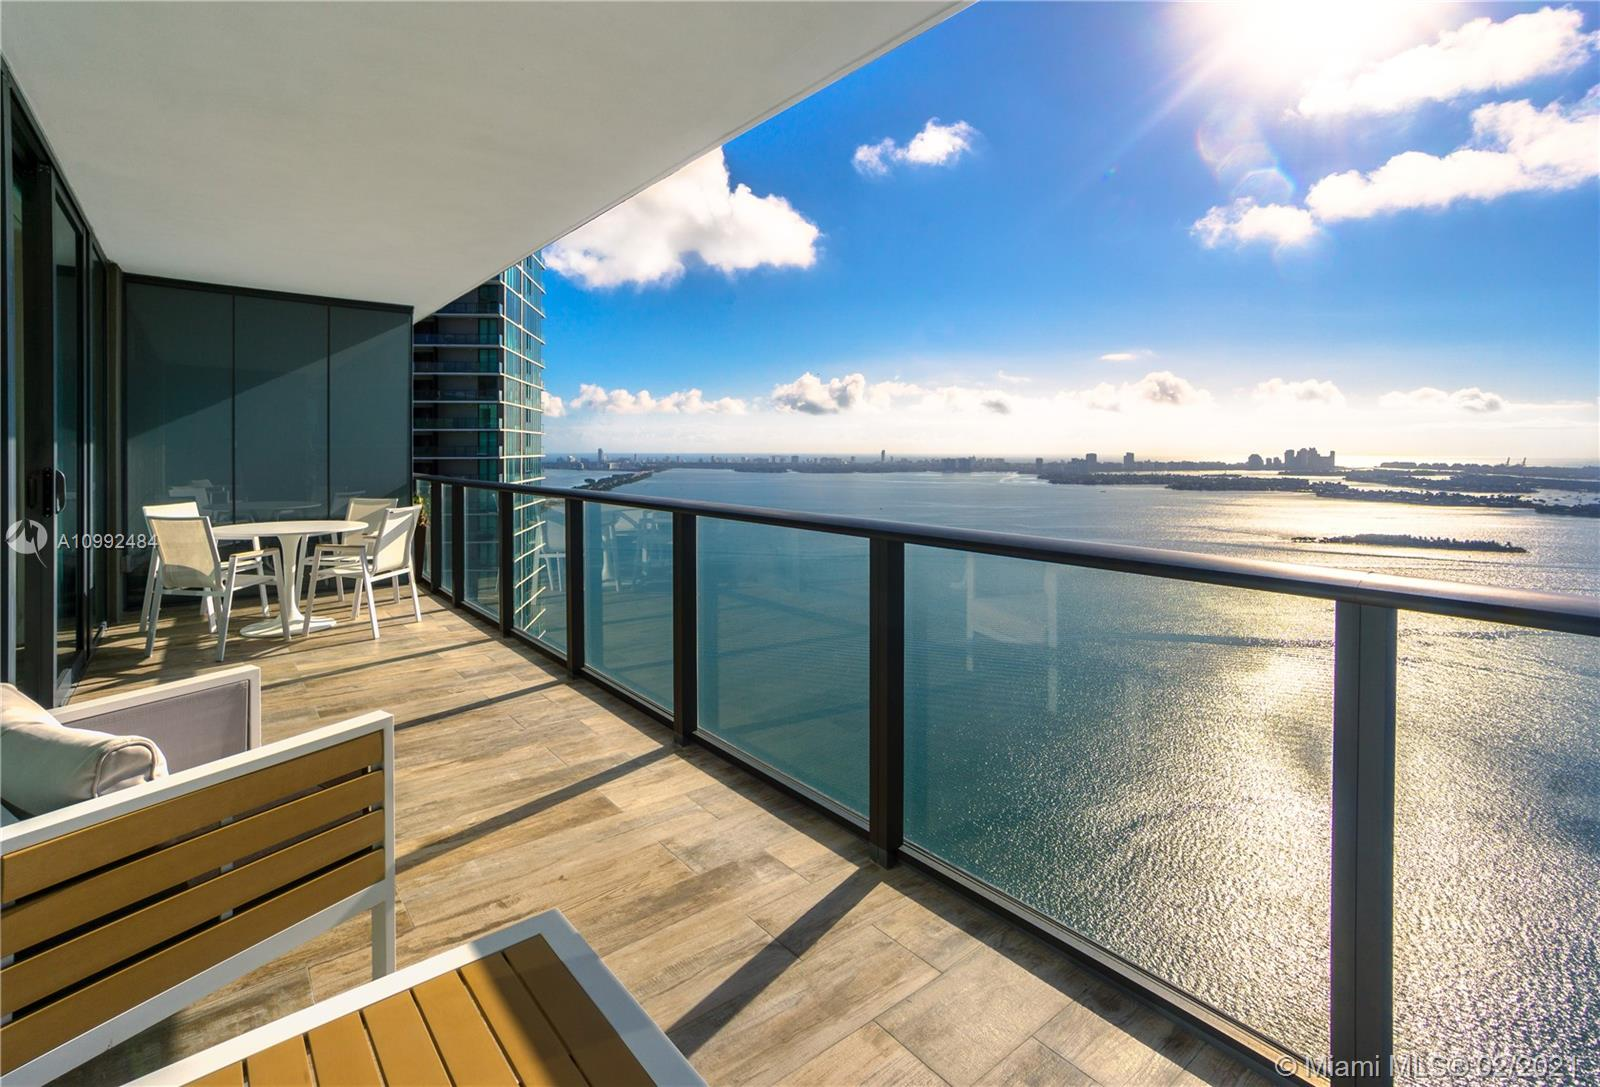 Paraiso Bay #4402 - 650 NE 32nd St #4402, Miami, FL 33137